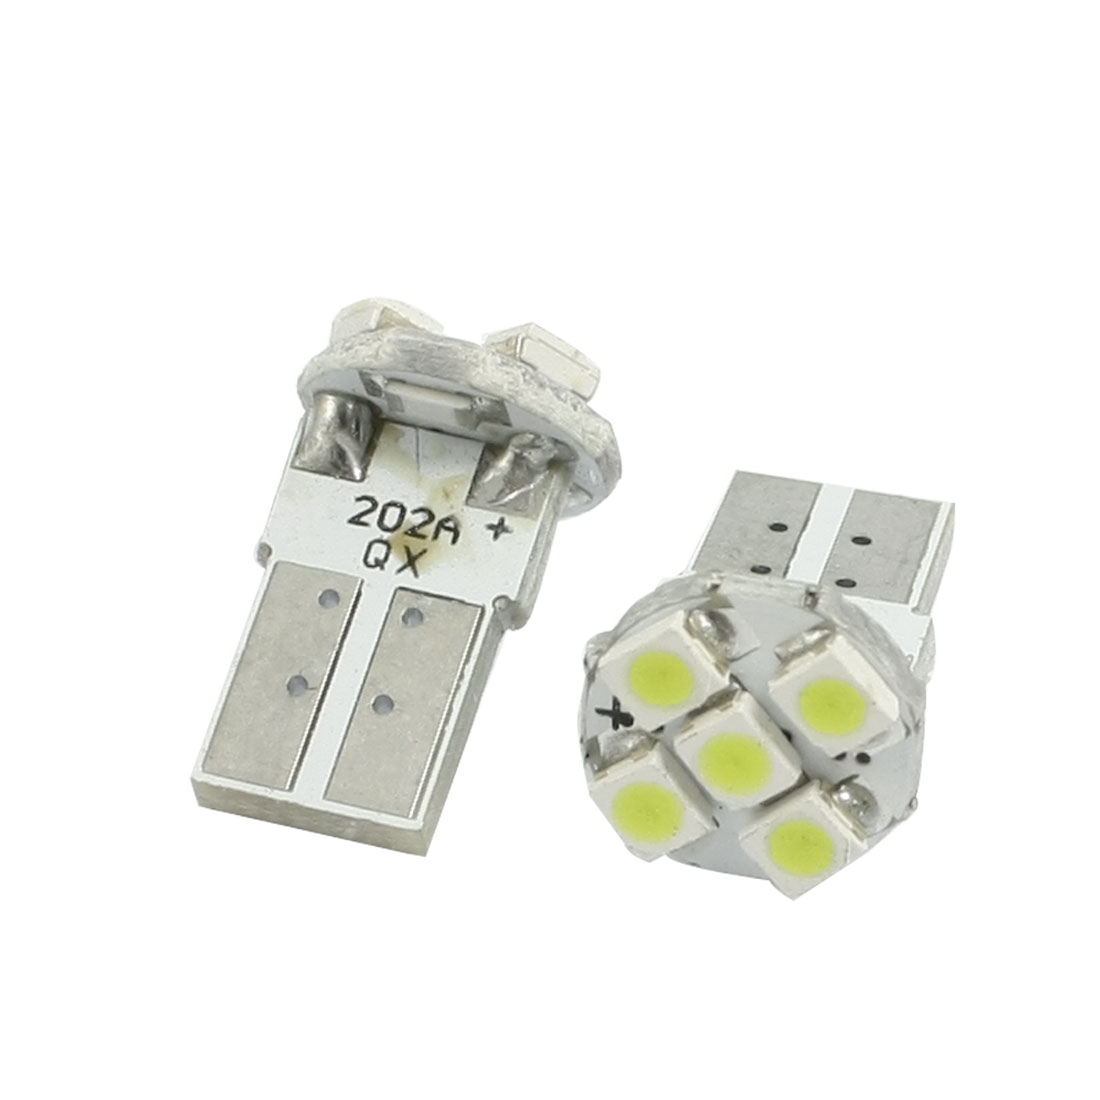 1210 SMD 5 LED T10 194 W5W Map Backup Light Lamp White 2 Pcs